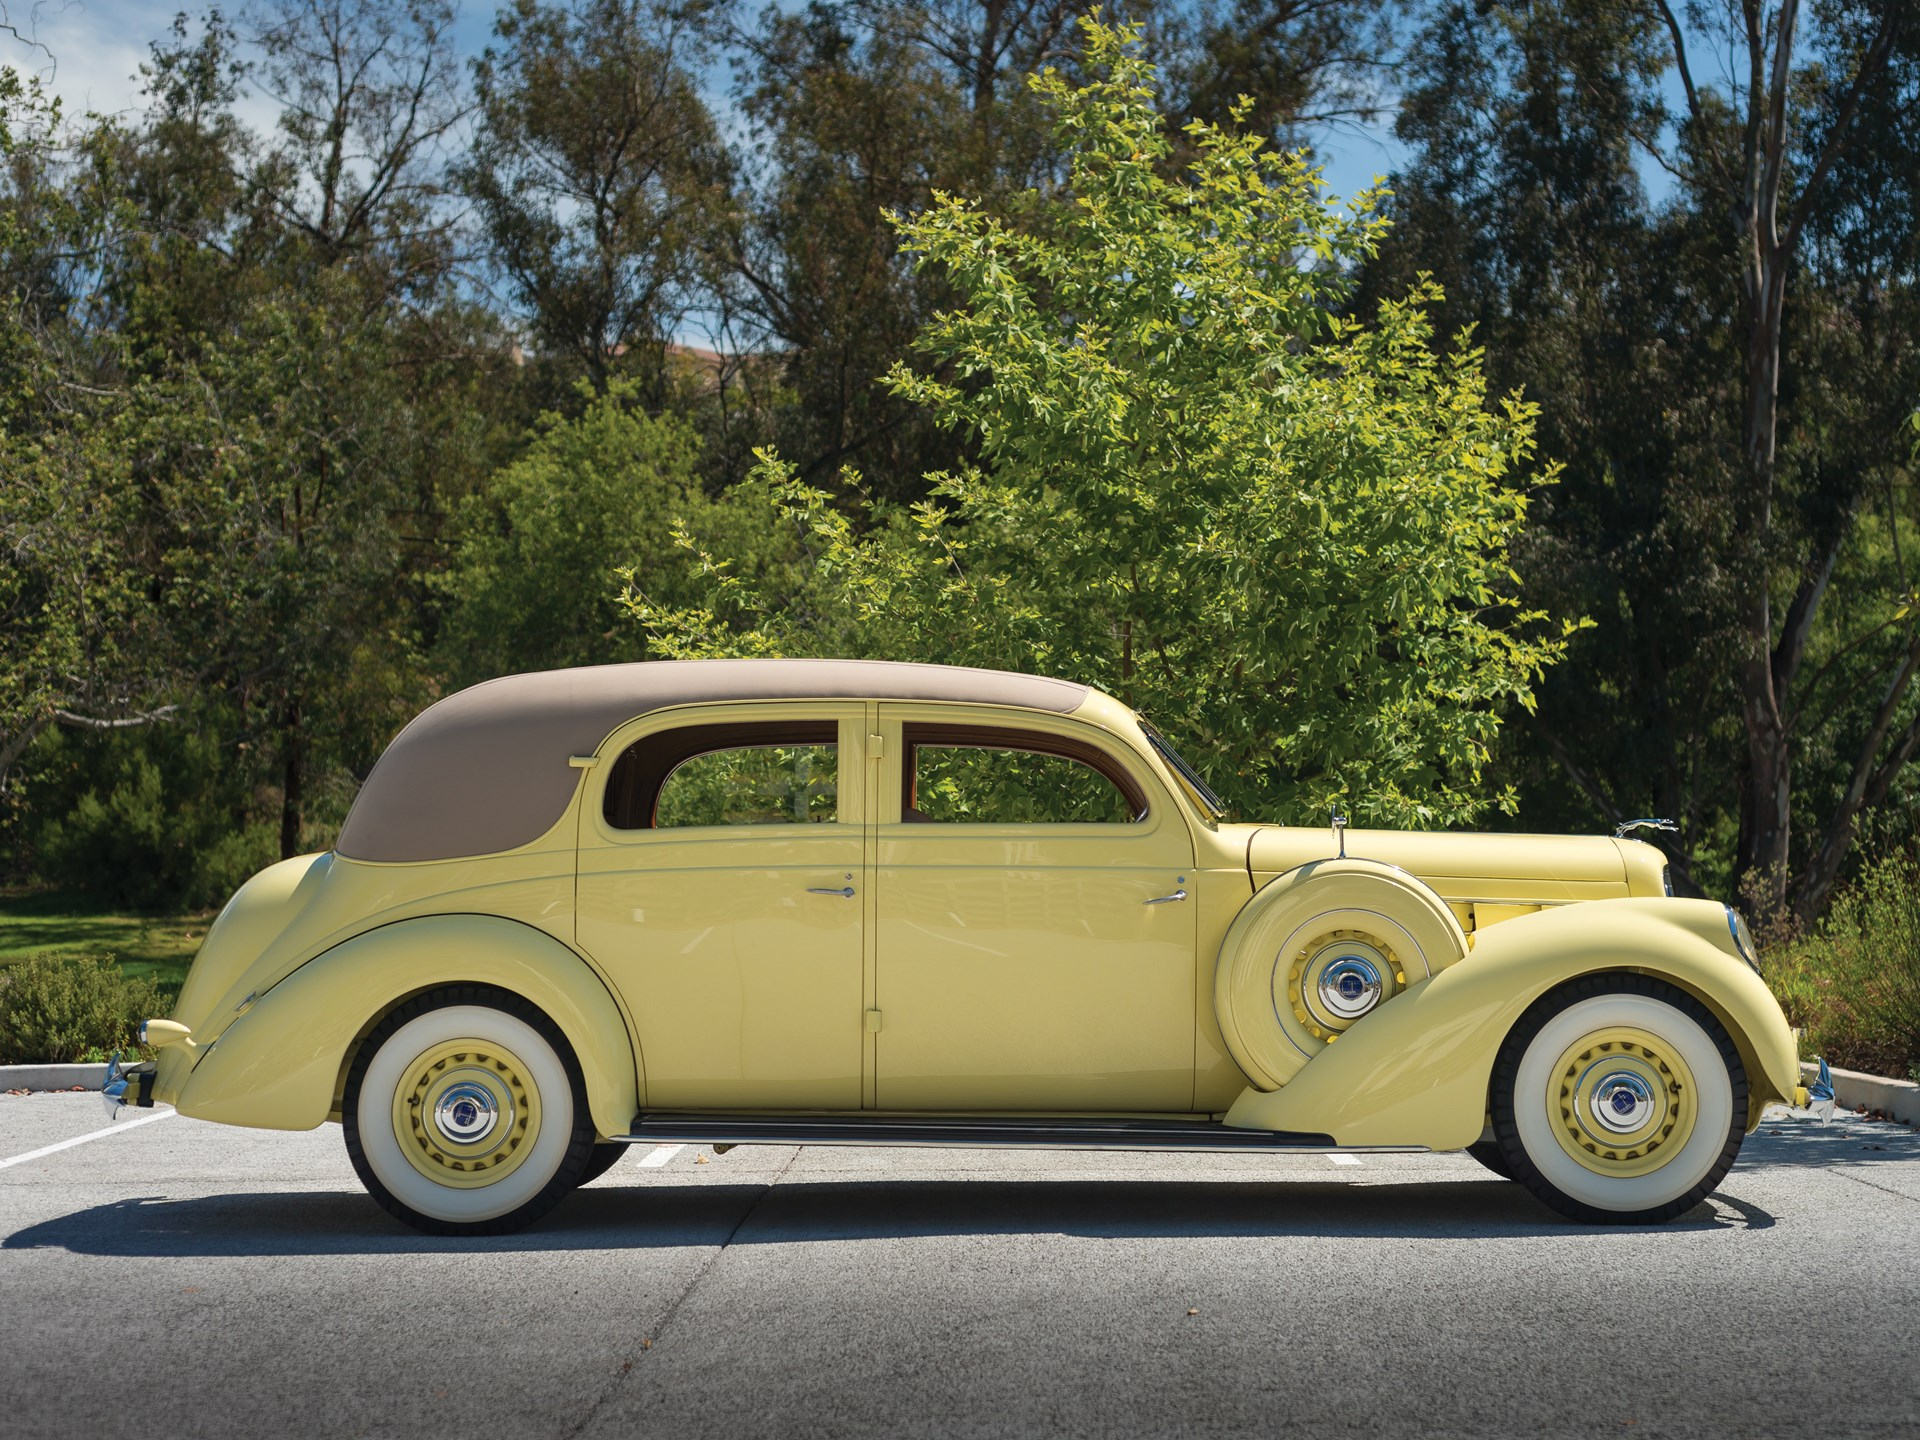 1937 Lincoln Model K Two-Window Berline by Judkins